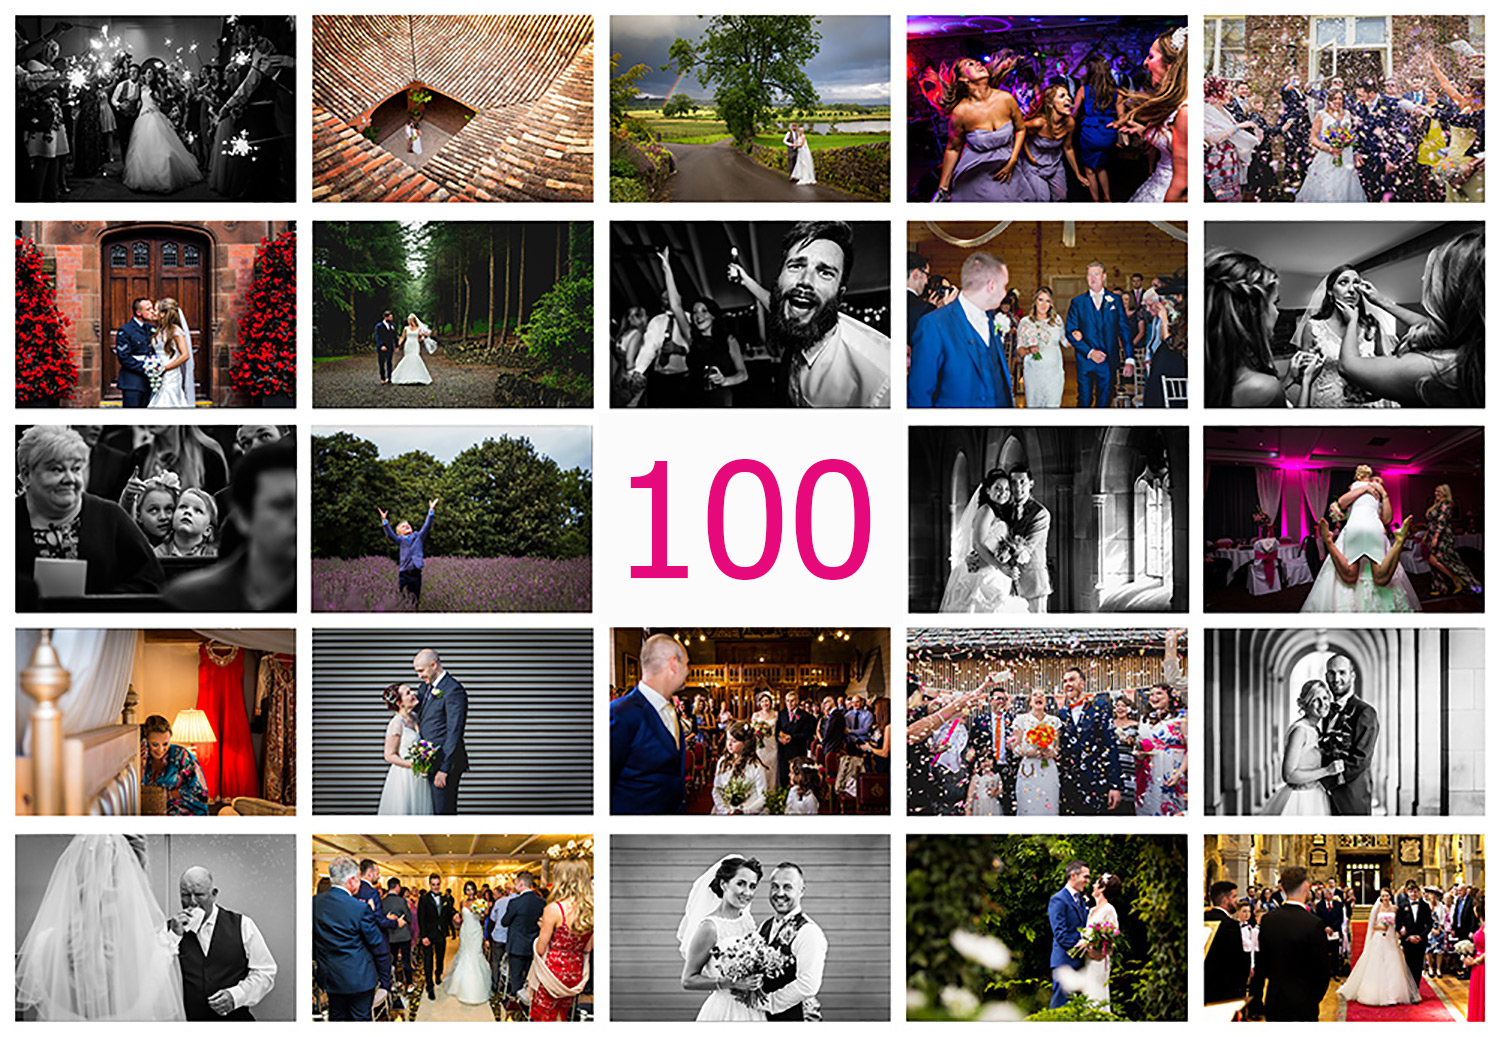 Manchester Wedding Photographer 100 weddings